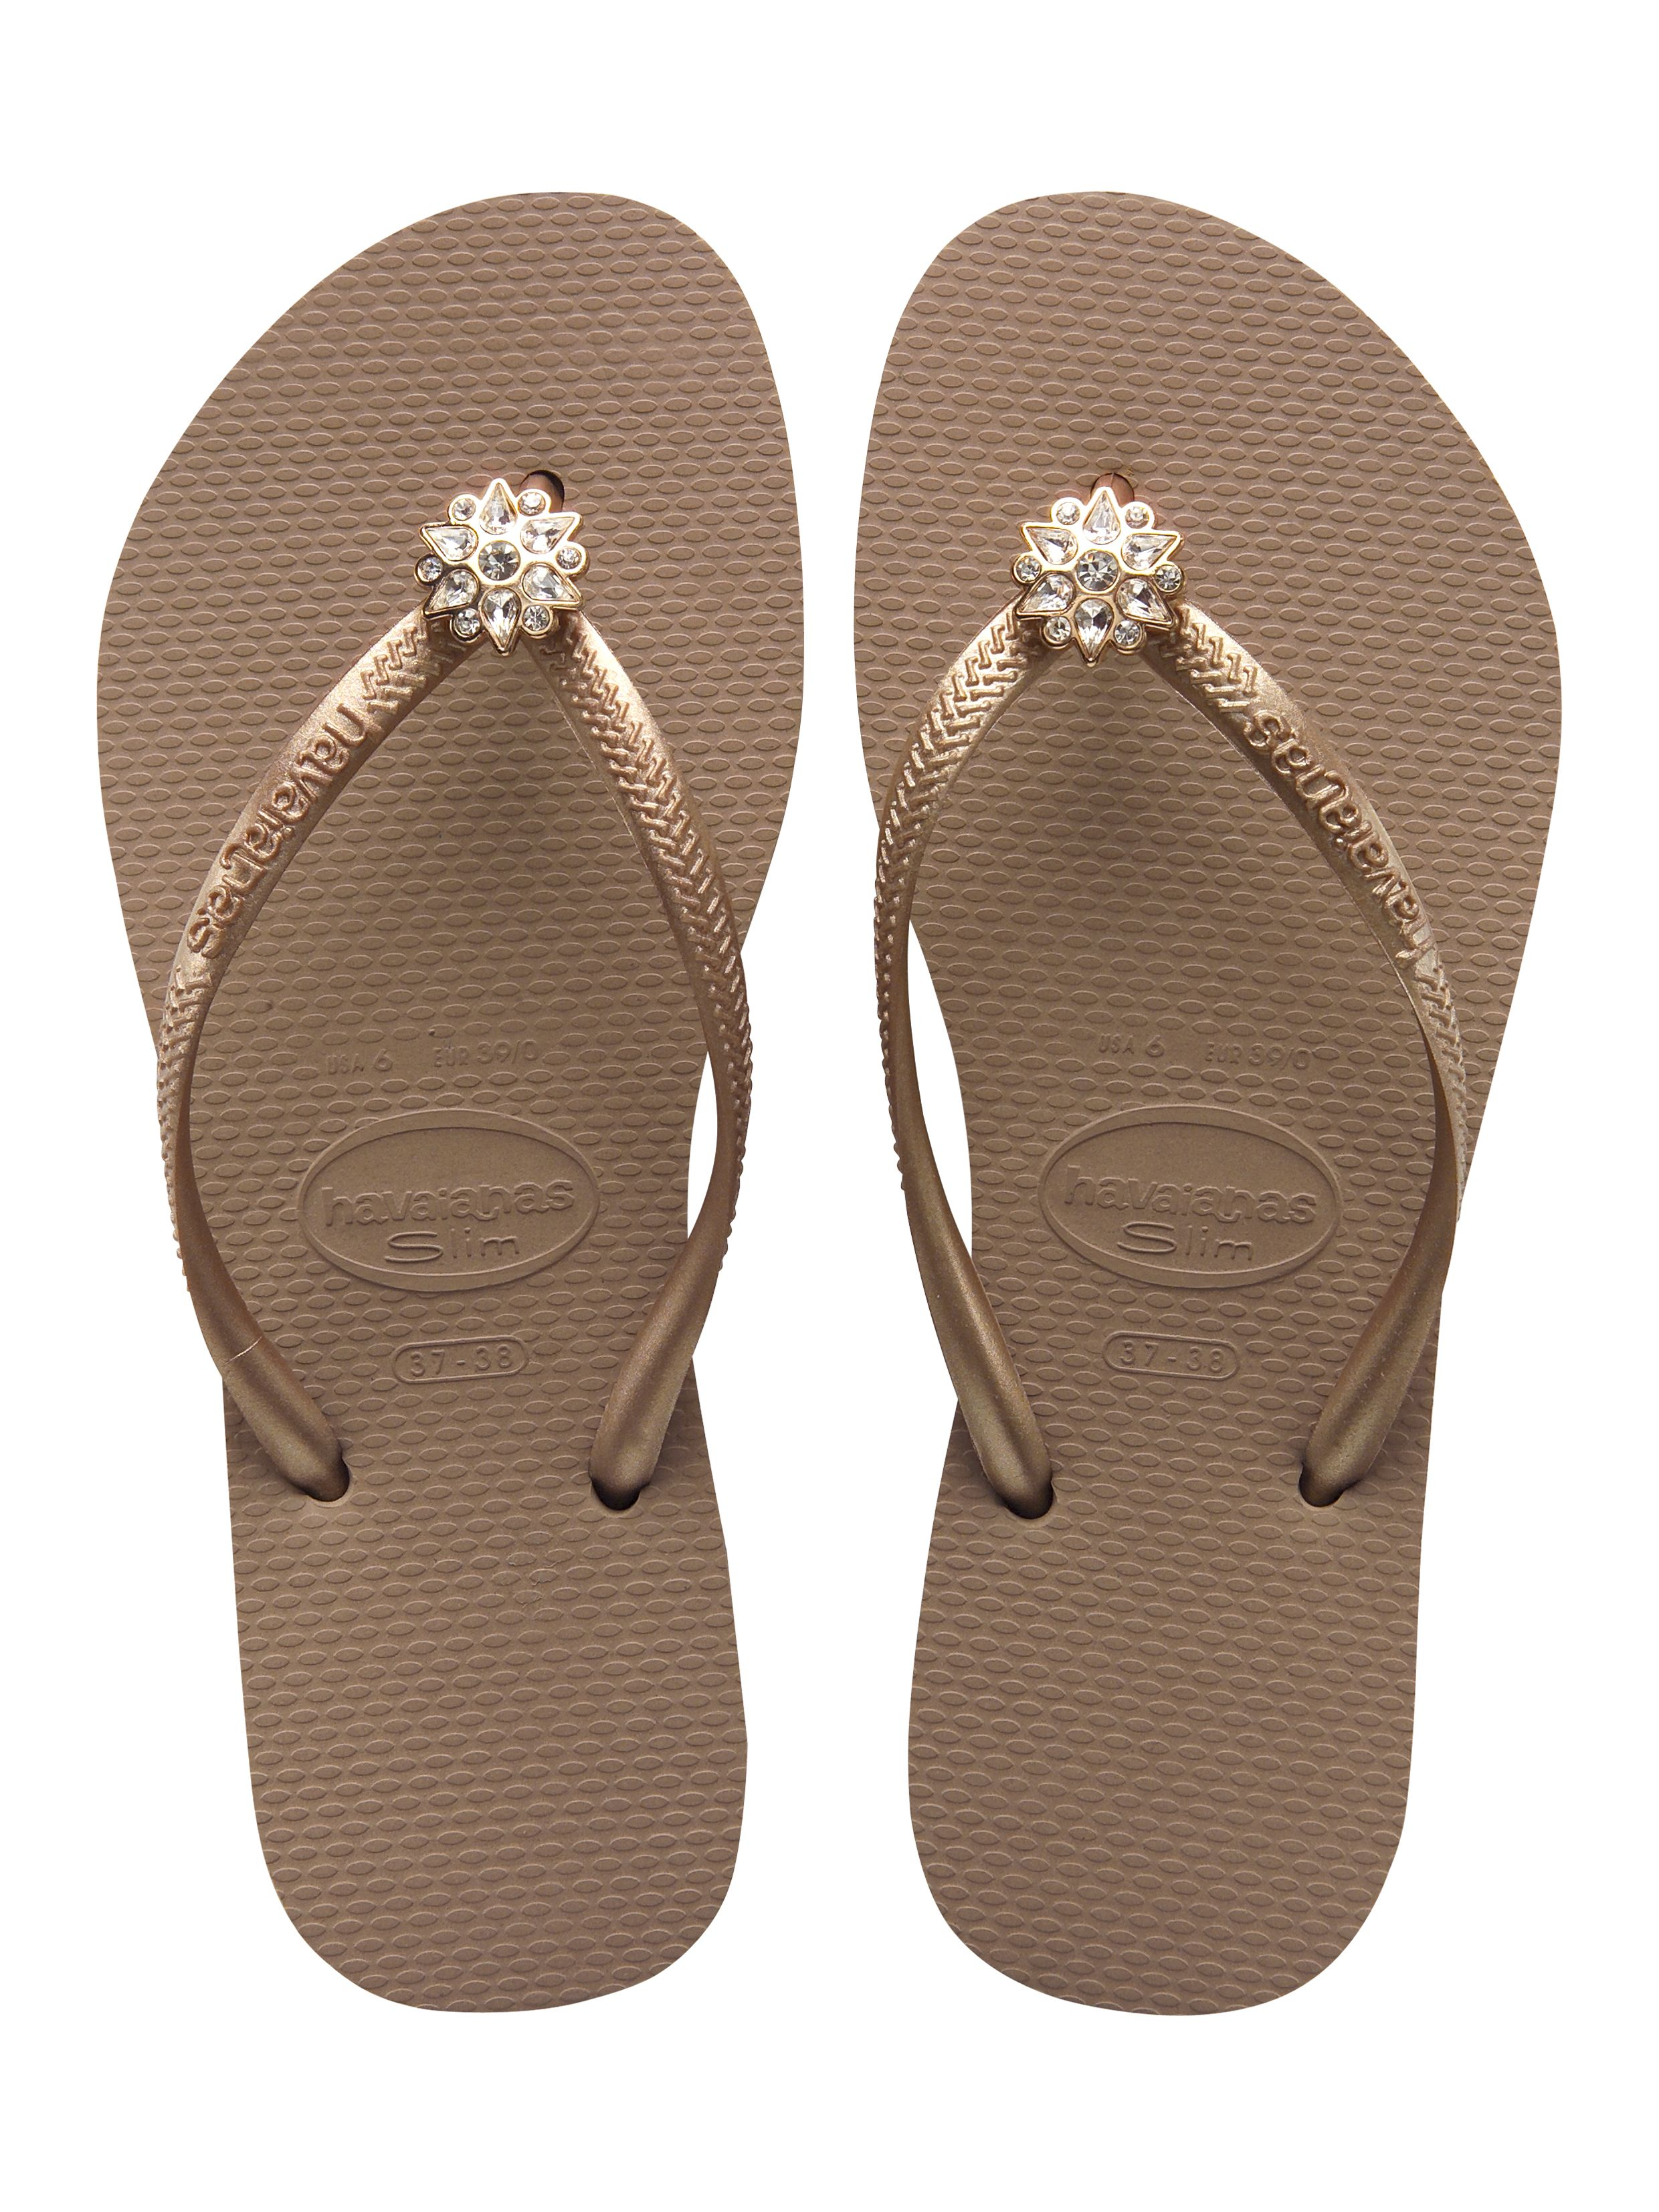 ... slim silhouette footbed, the Slim Crystal Poem flip flop is a  fashionable flip flop for women. These flower embellished flip flops come  in fresh new ...